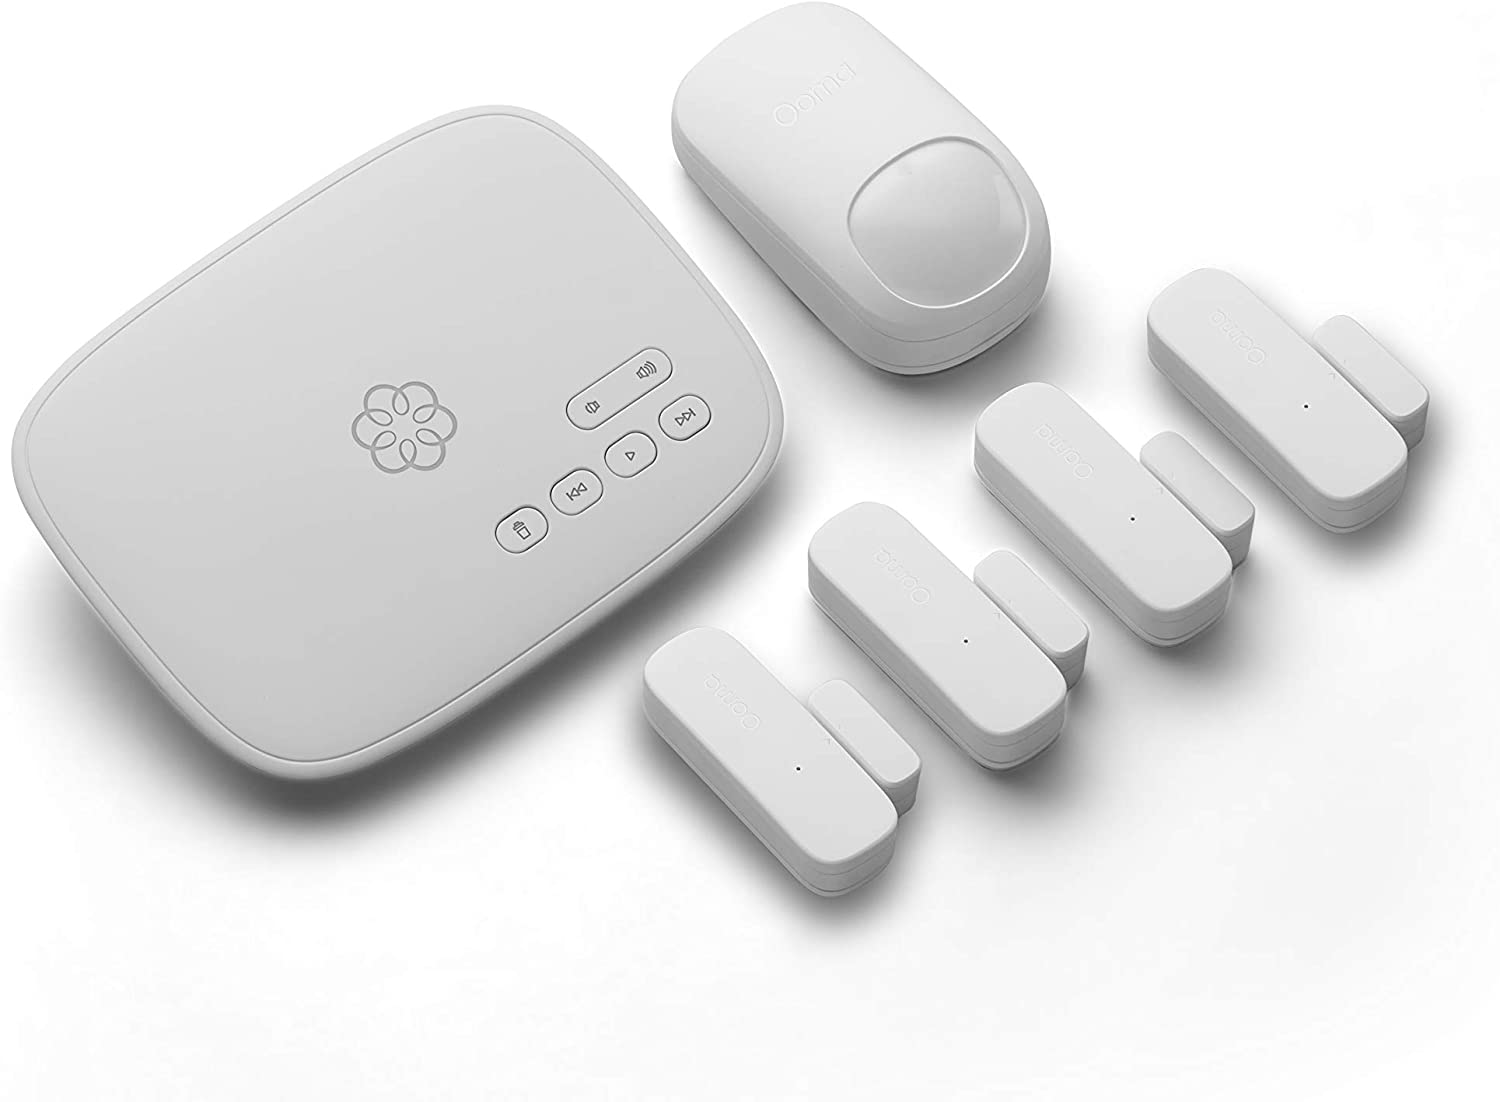 Ooma Smart Home Security with motion and door/window sensors. No contracts and free self-monitor plan. Optional professional monitoring, keypad, water sensor, and garage door sensor. Works with Alexa.